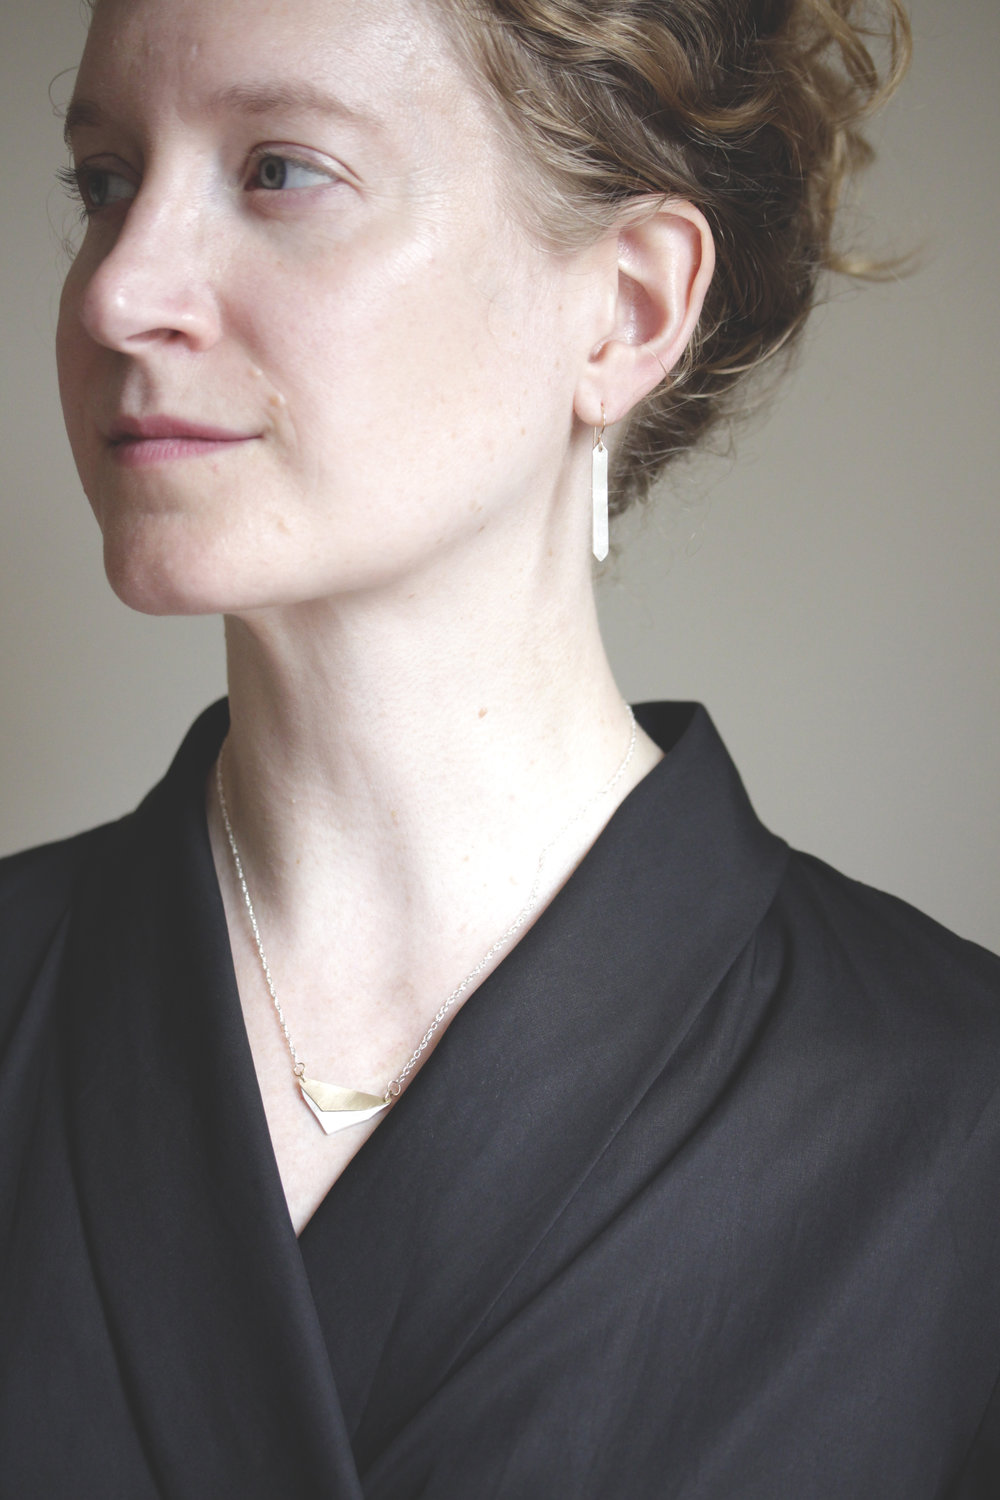 the  Sierra Madre  necklace +  Maestro  earrings